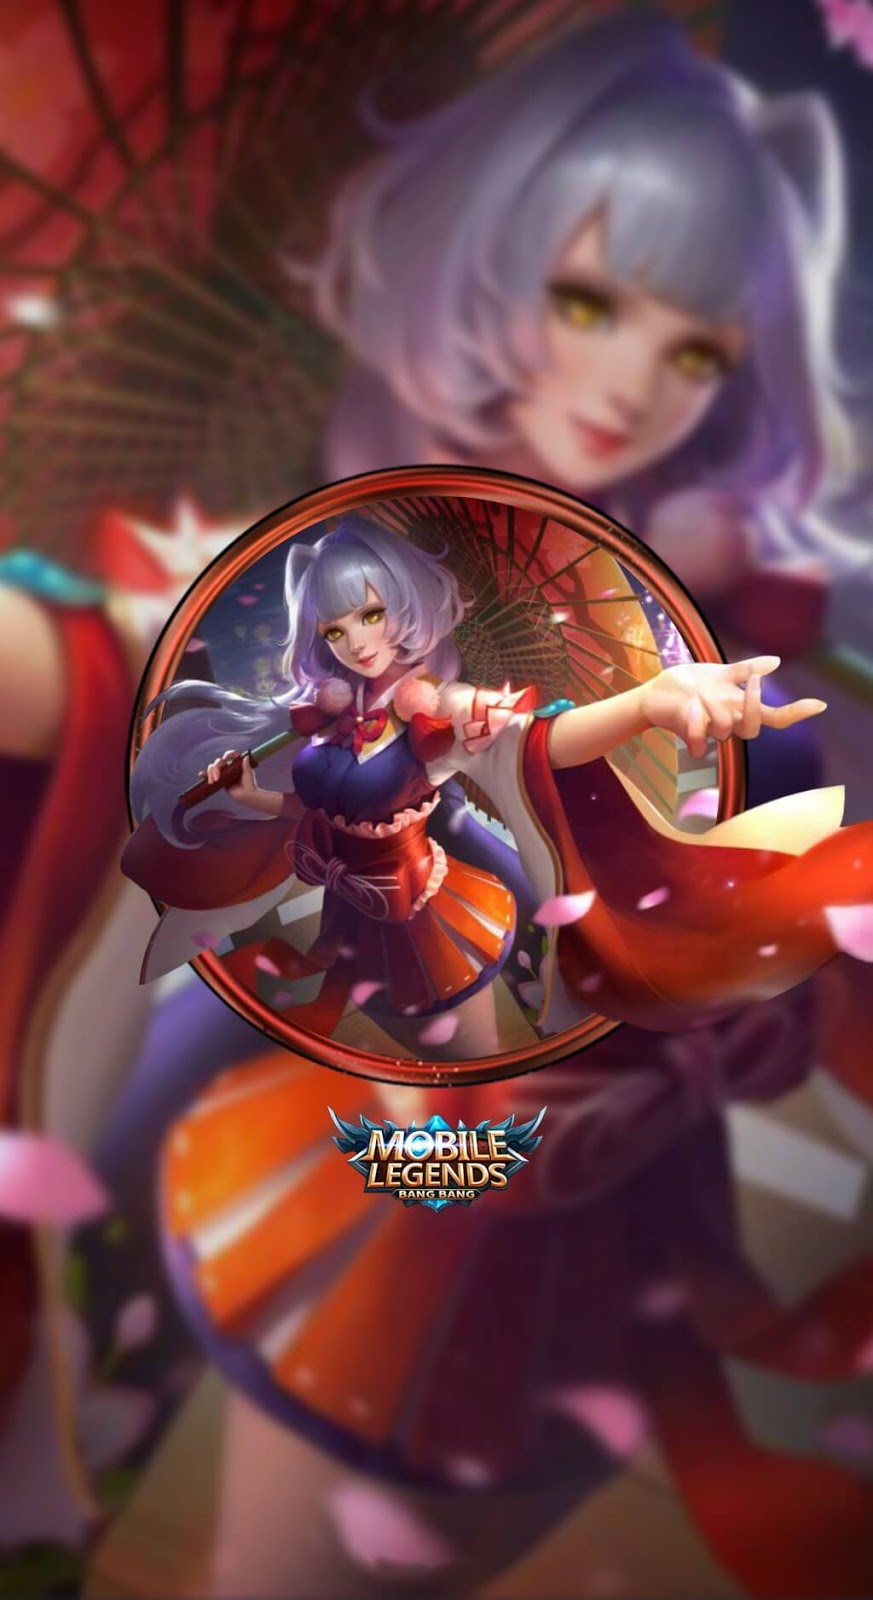 Wallpaper Kagura Cherry Witch Skin Mobile Legends Full HD for Android and iOS